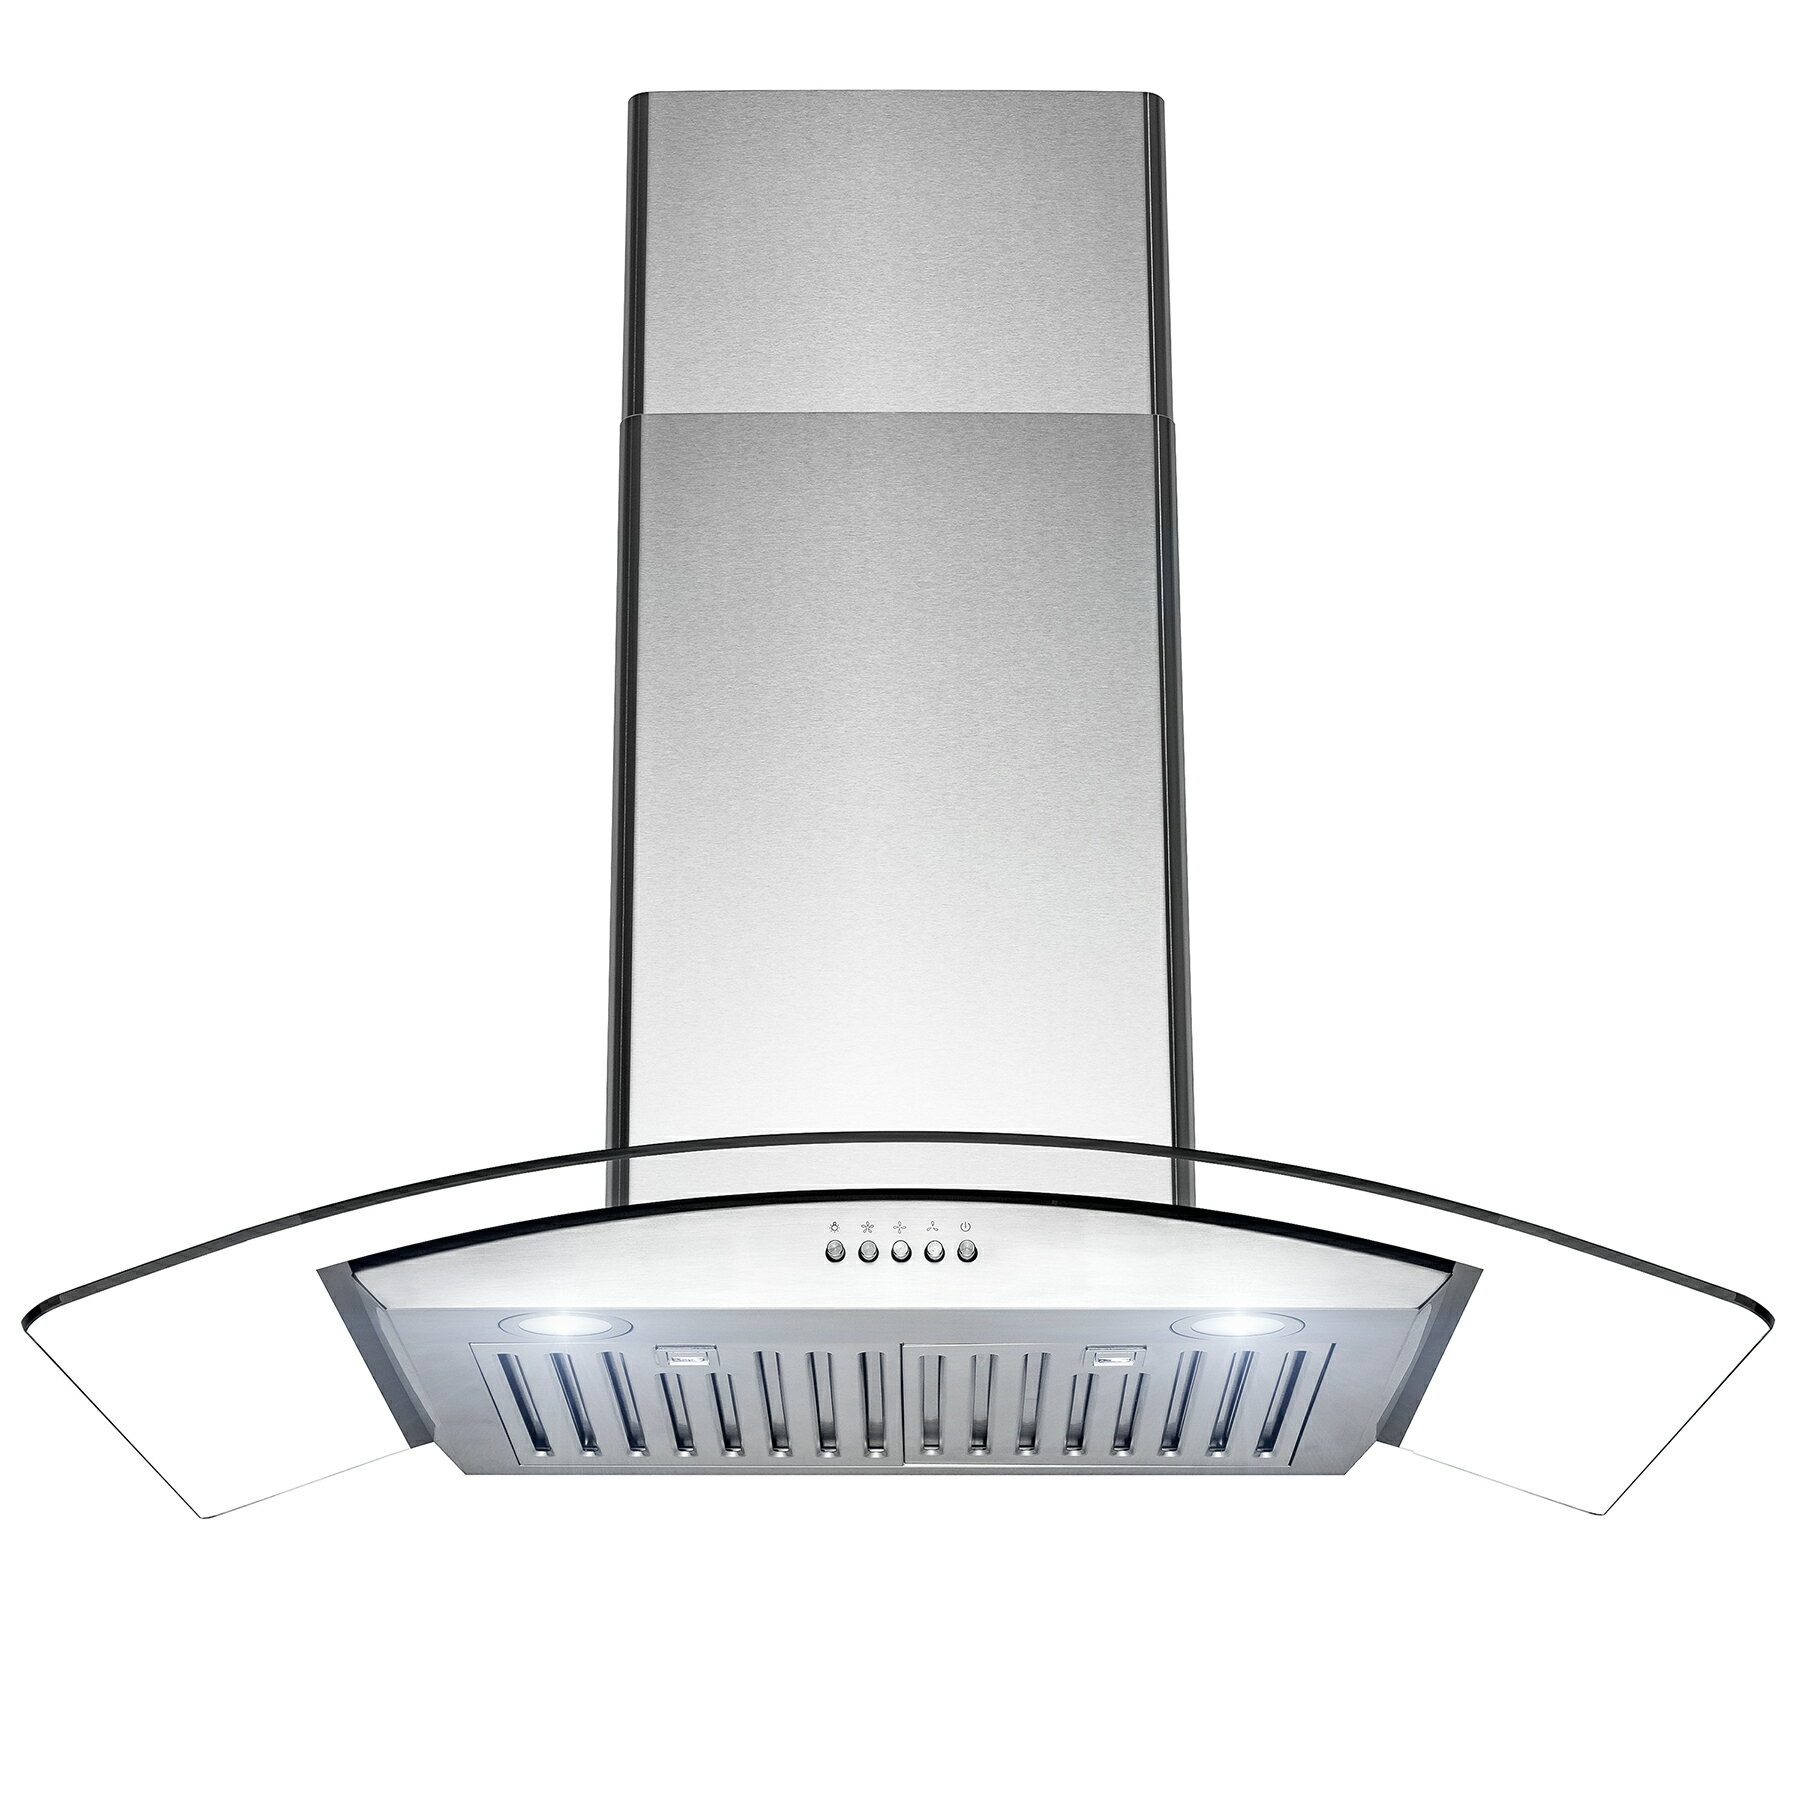 "AKDY 36"" Wall Mount Stainless Steel Tempered Glass Push Panel Kitchen Range Hood Cooking Fan 0"